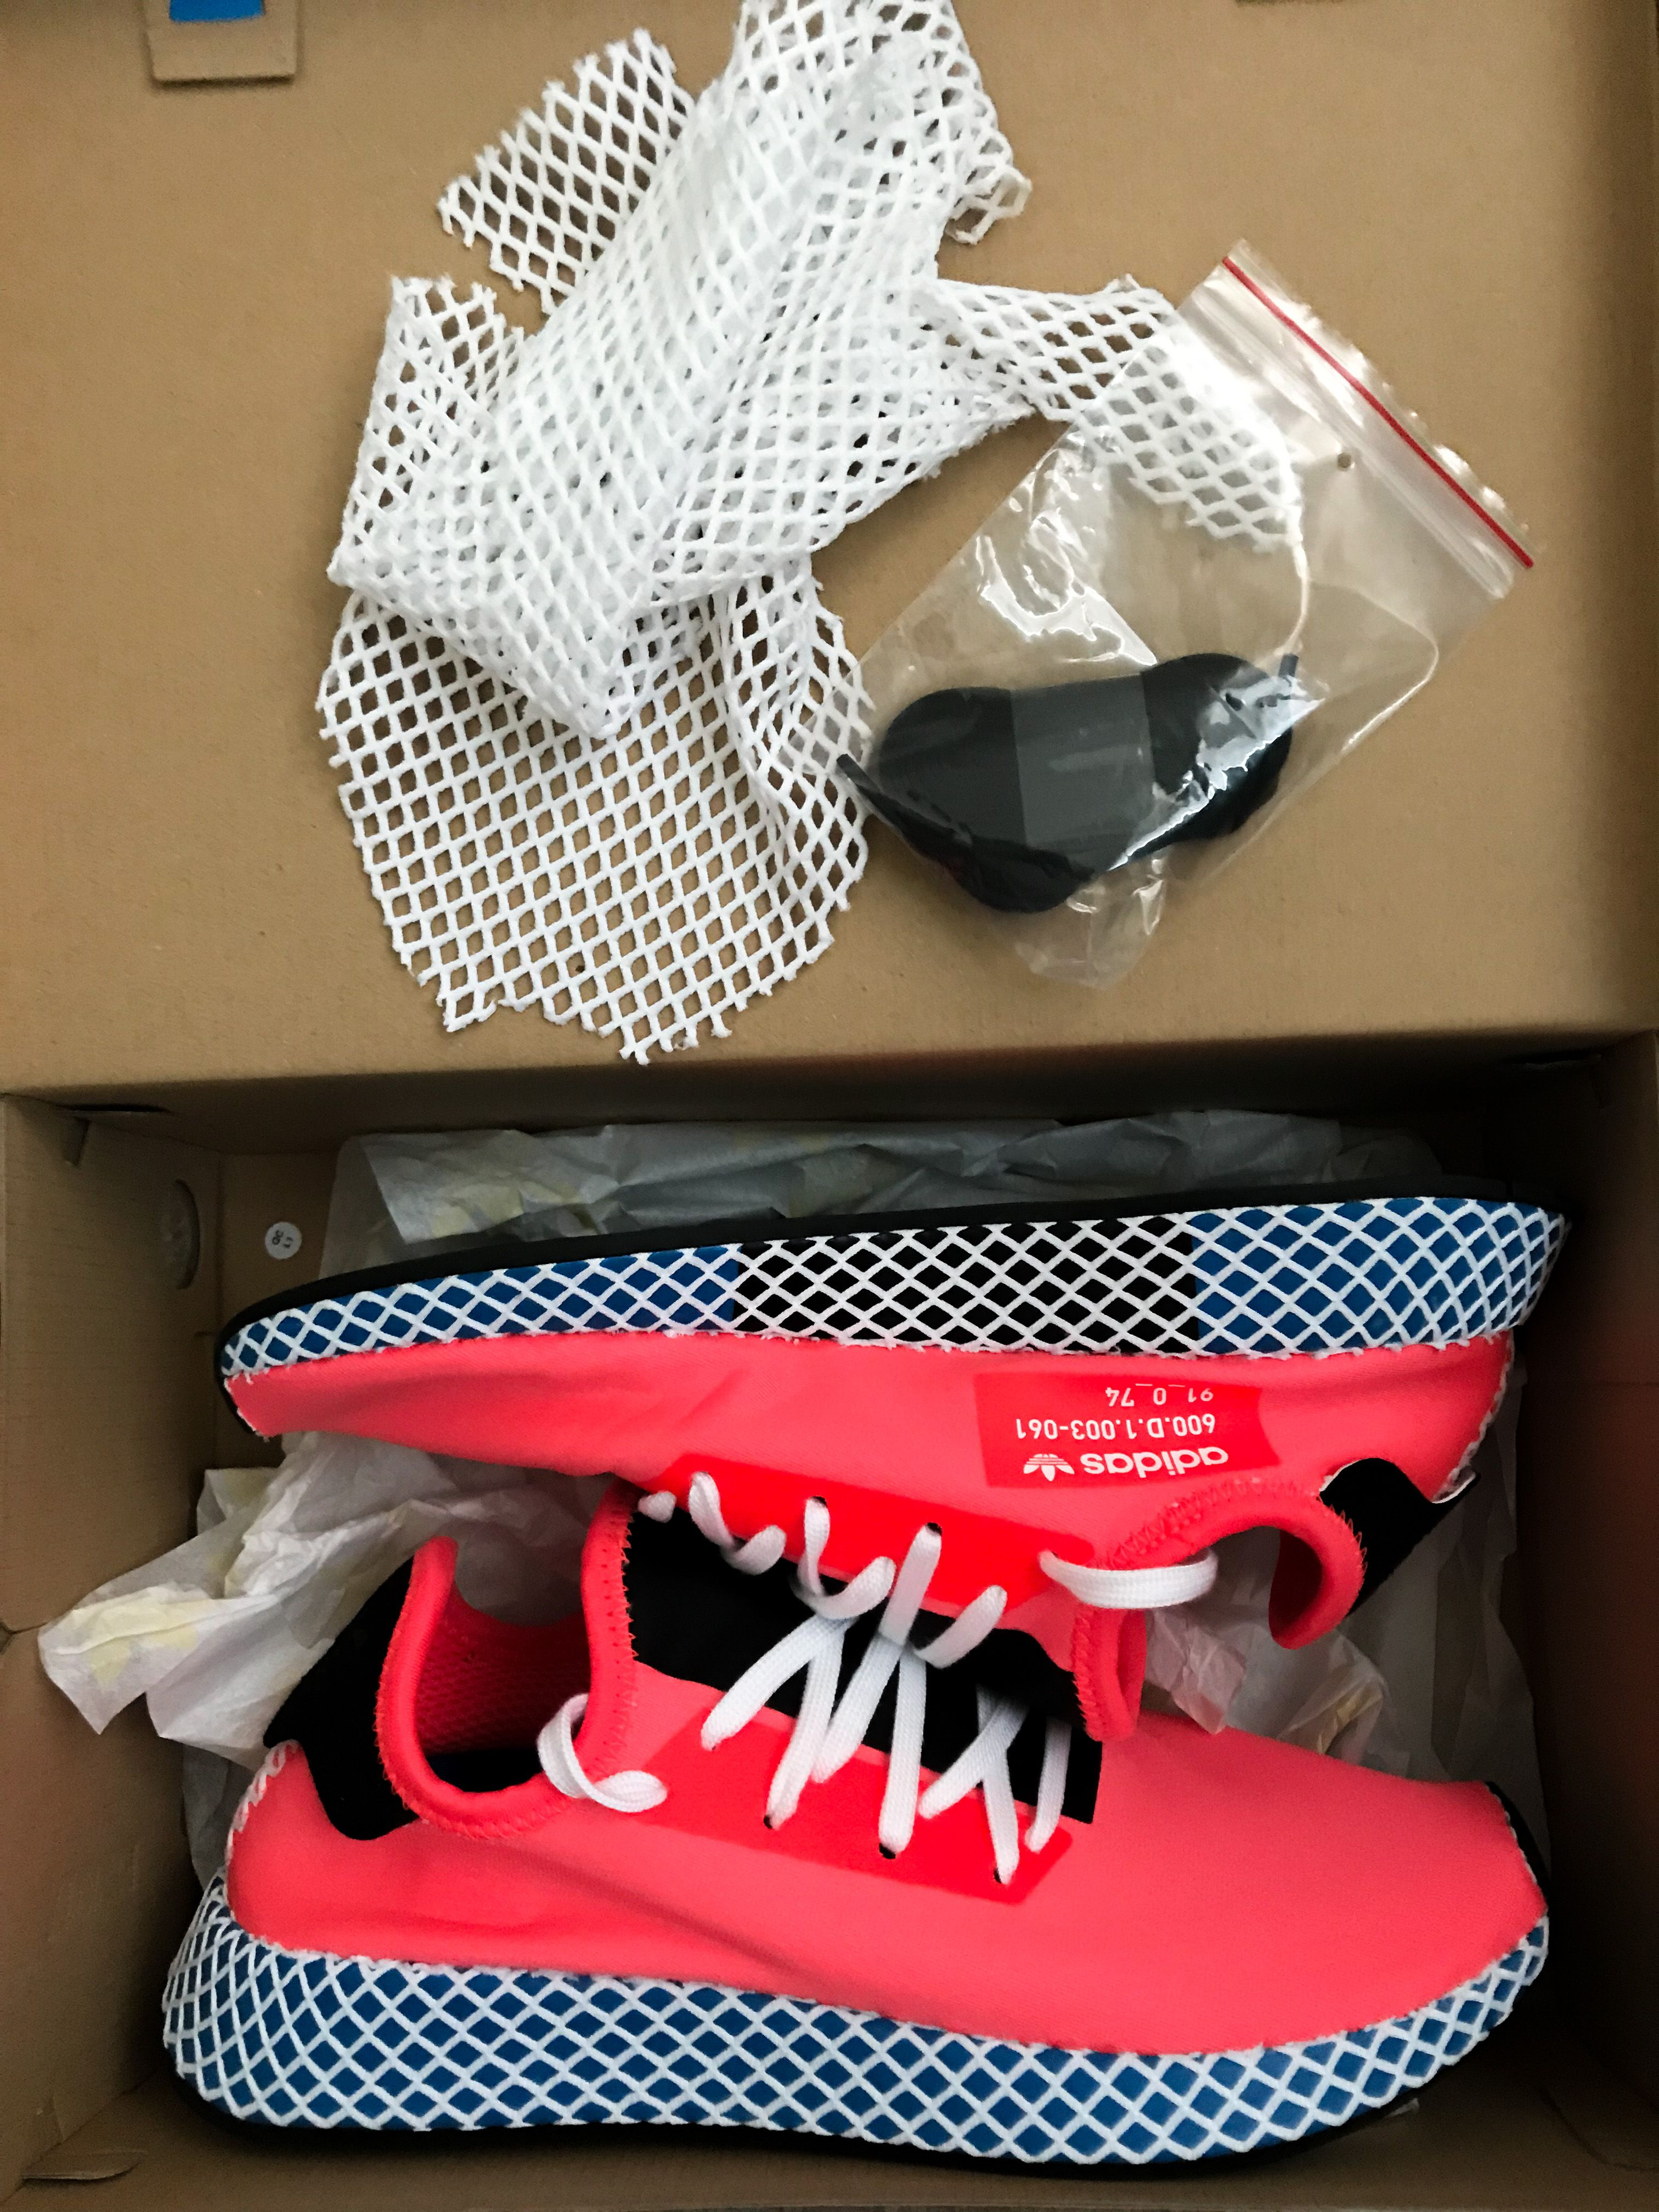 reputable site 59b00 128d0 Uncaged Adidas Deerupt Runner sneakers